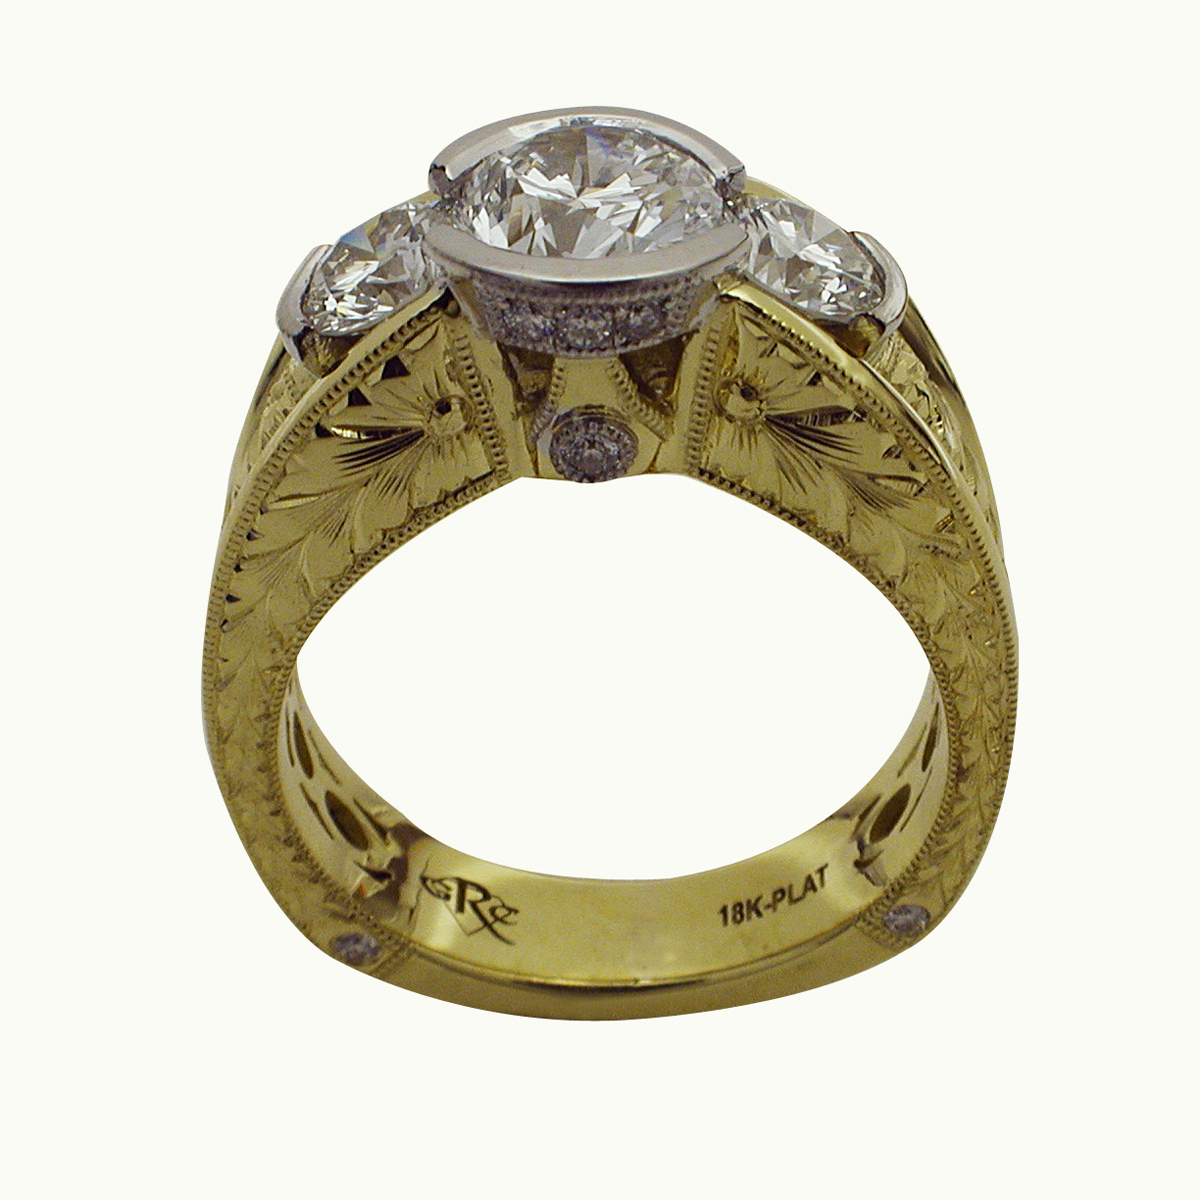 18kt Yellow Gold & Platinum Three Stone Round Brilliant Diamond Ring - Front View